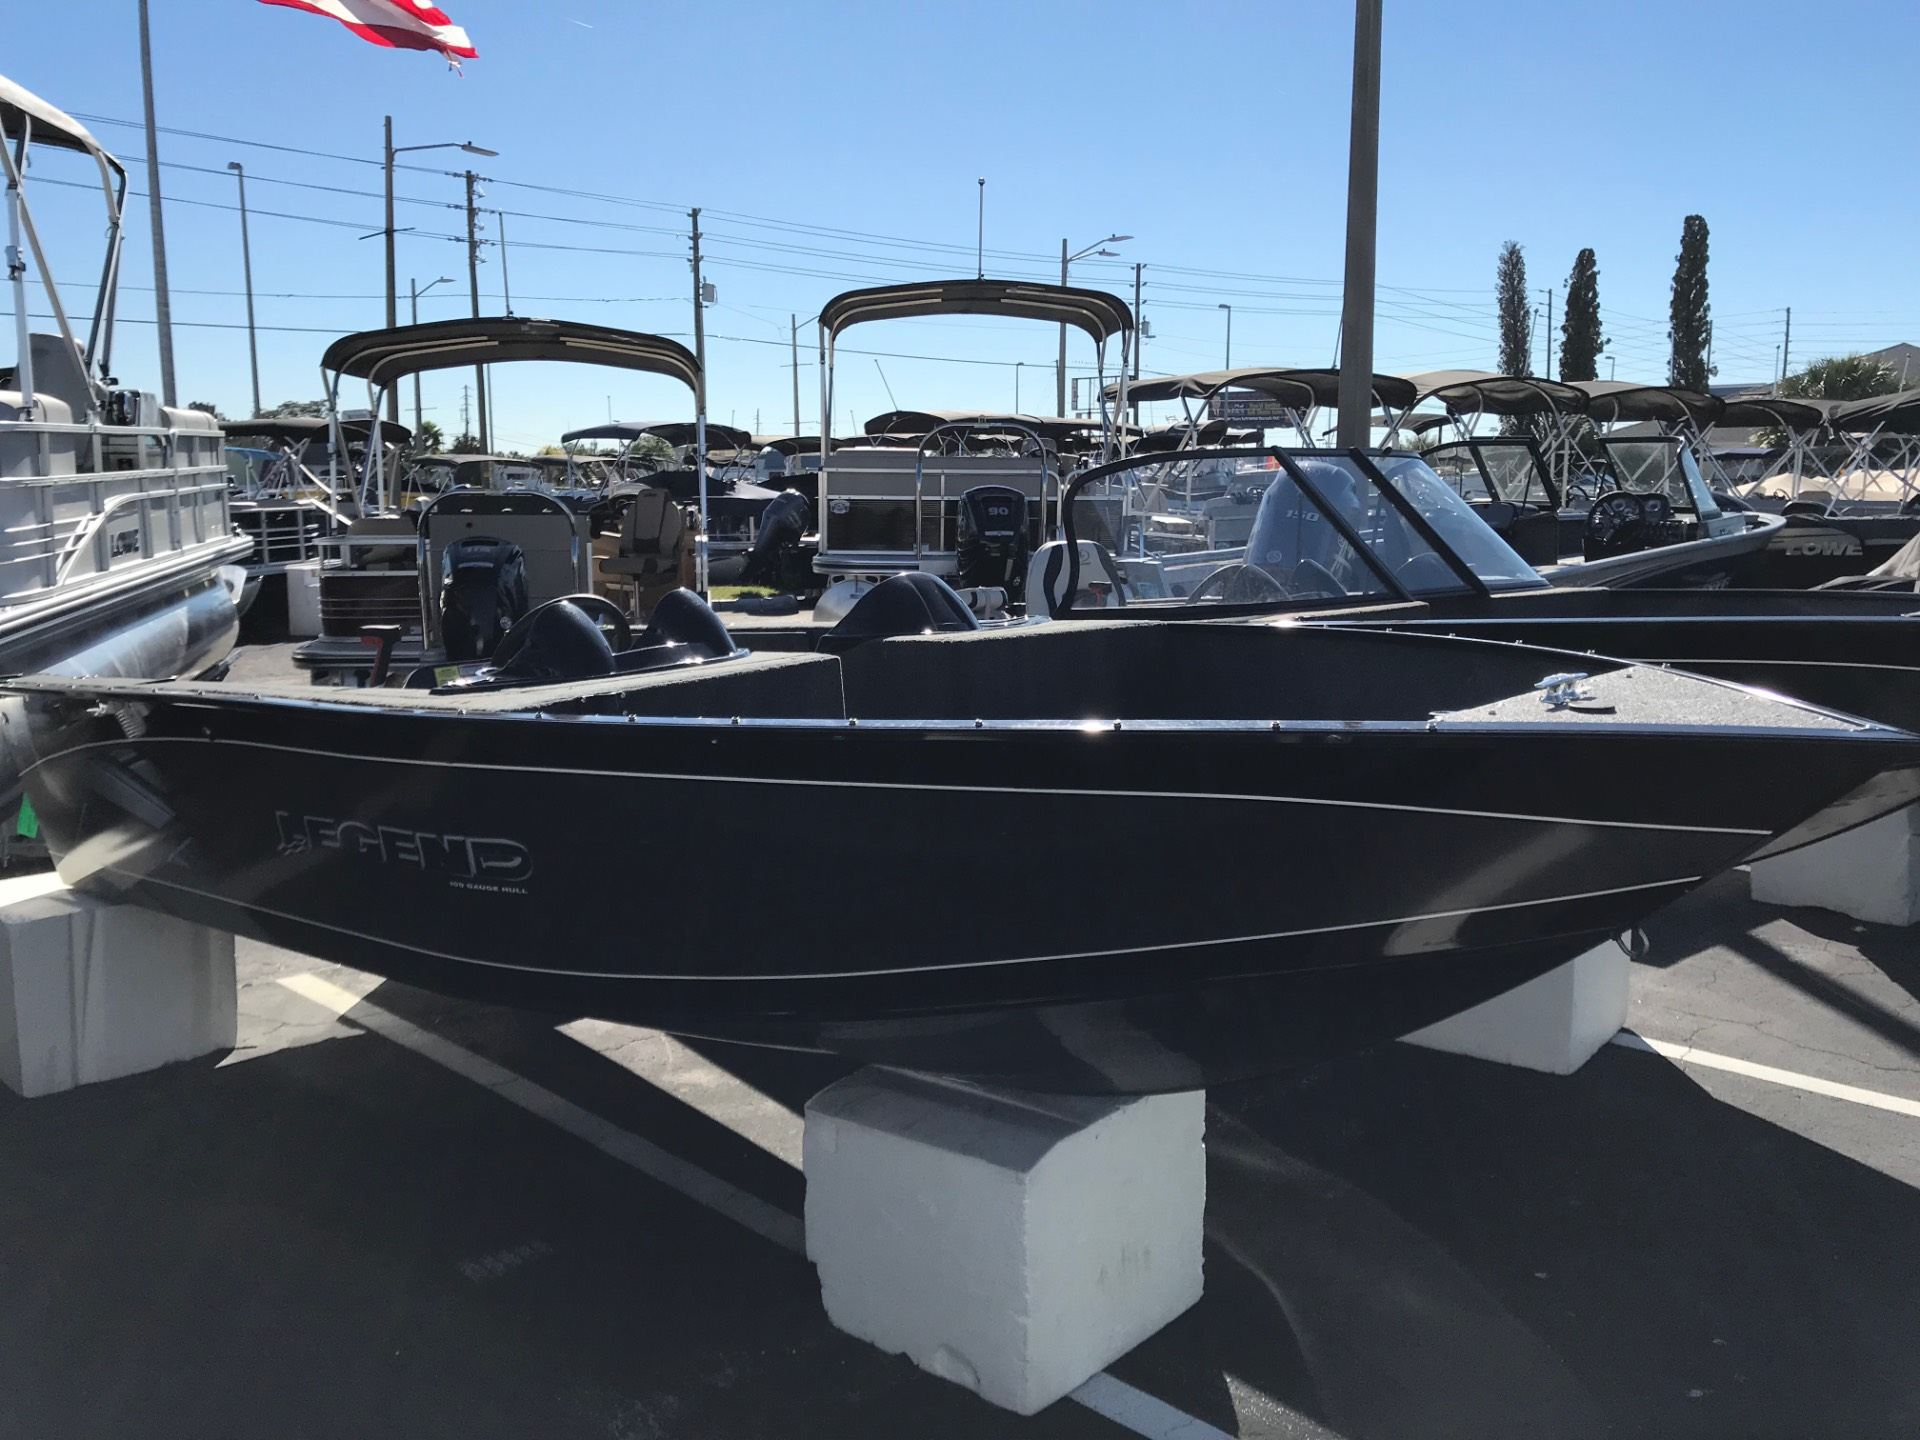 2015 Legend 16 XTREME in Holiday, Florida - Photo 1